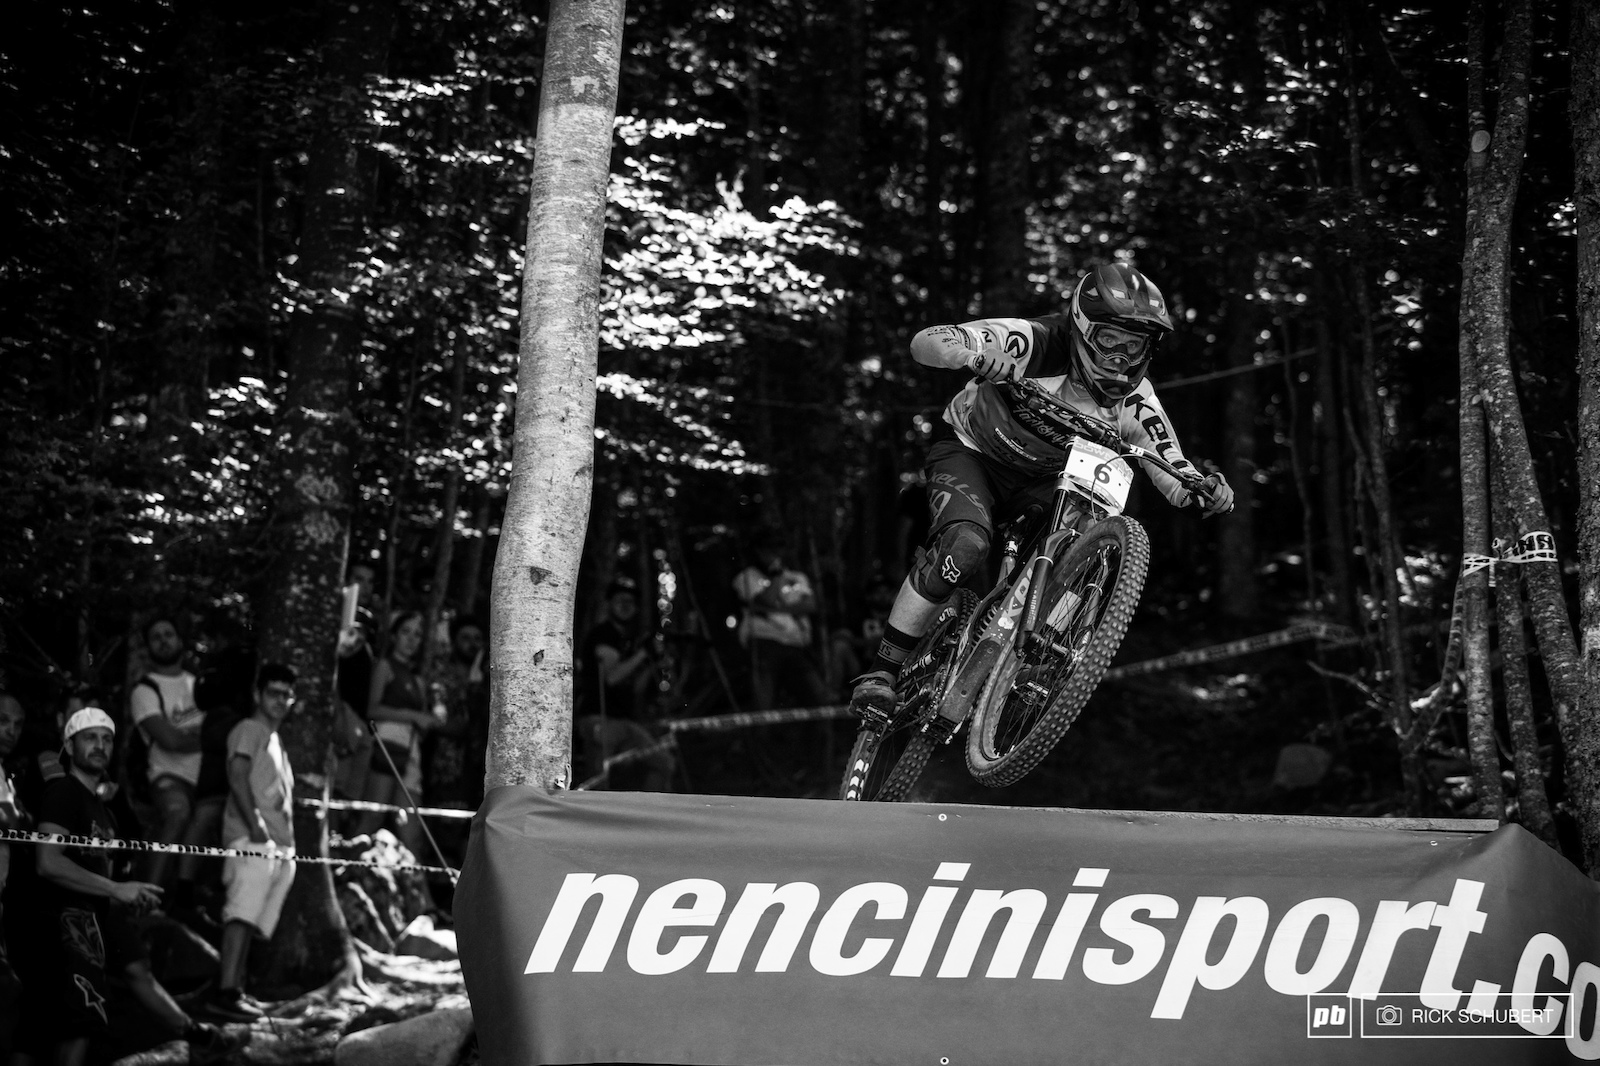 Stanislav Sehnal pushed hard coming out of the dark woods into the very last turn